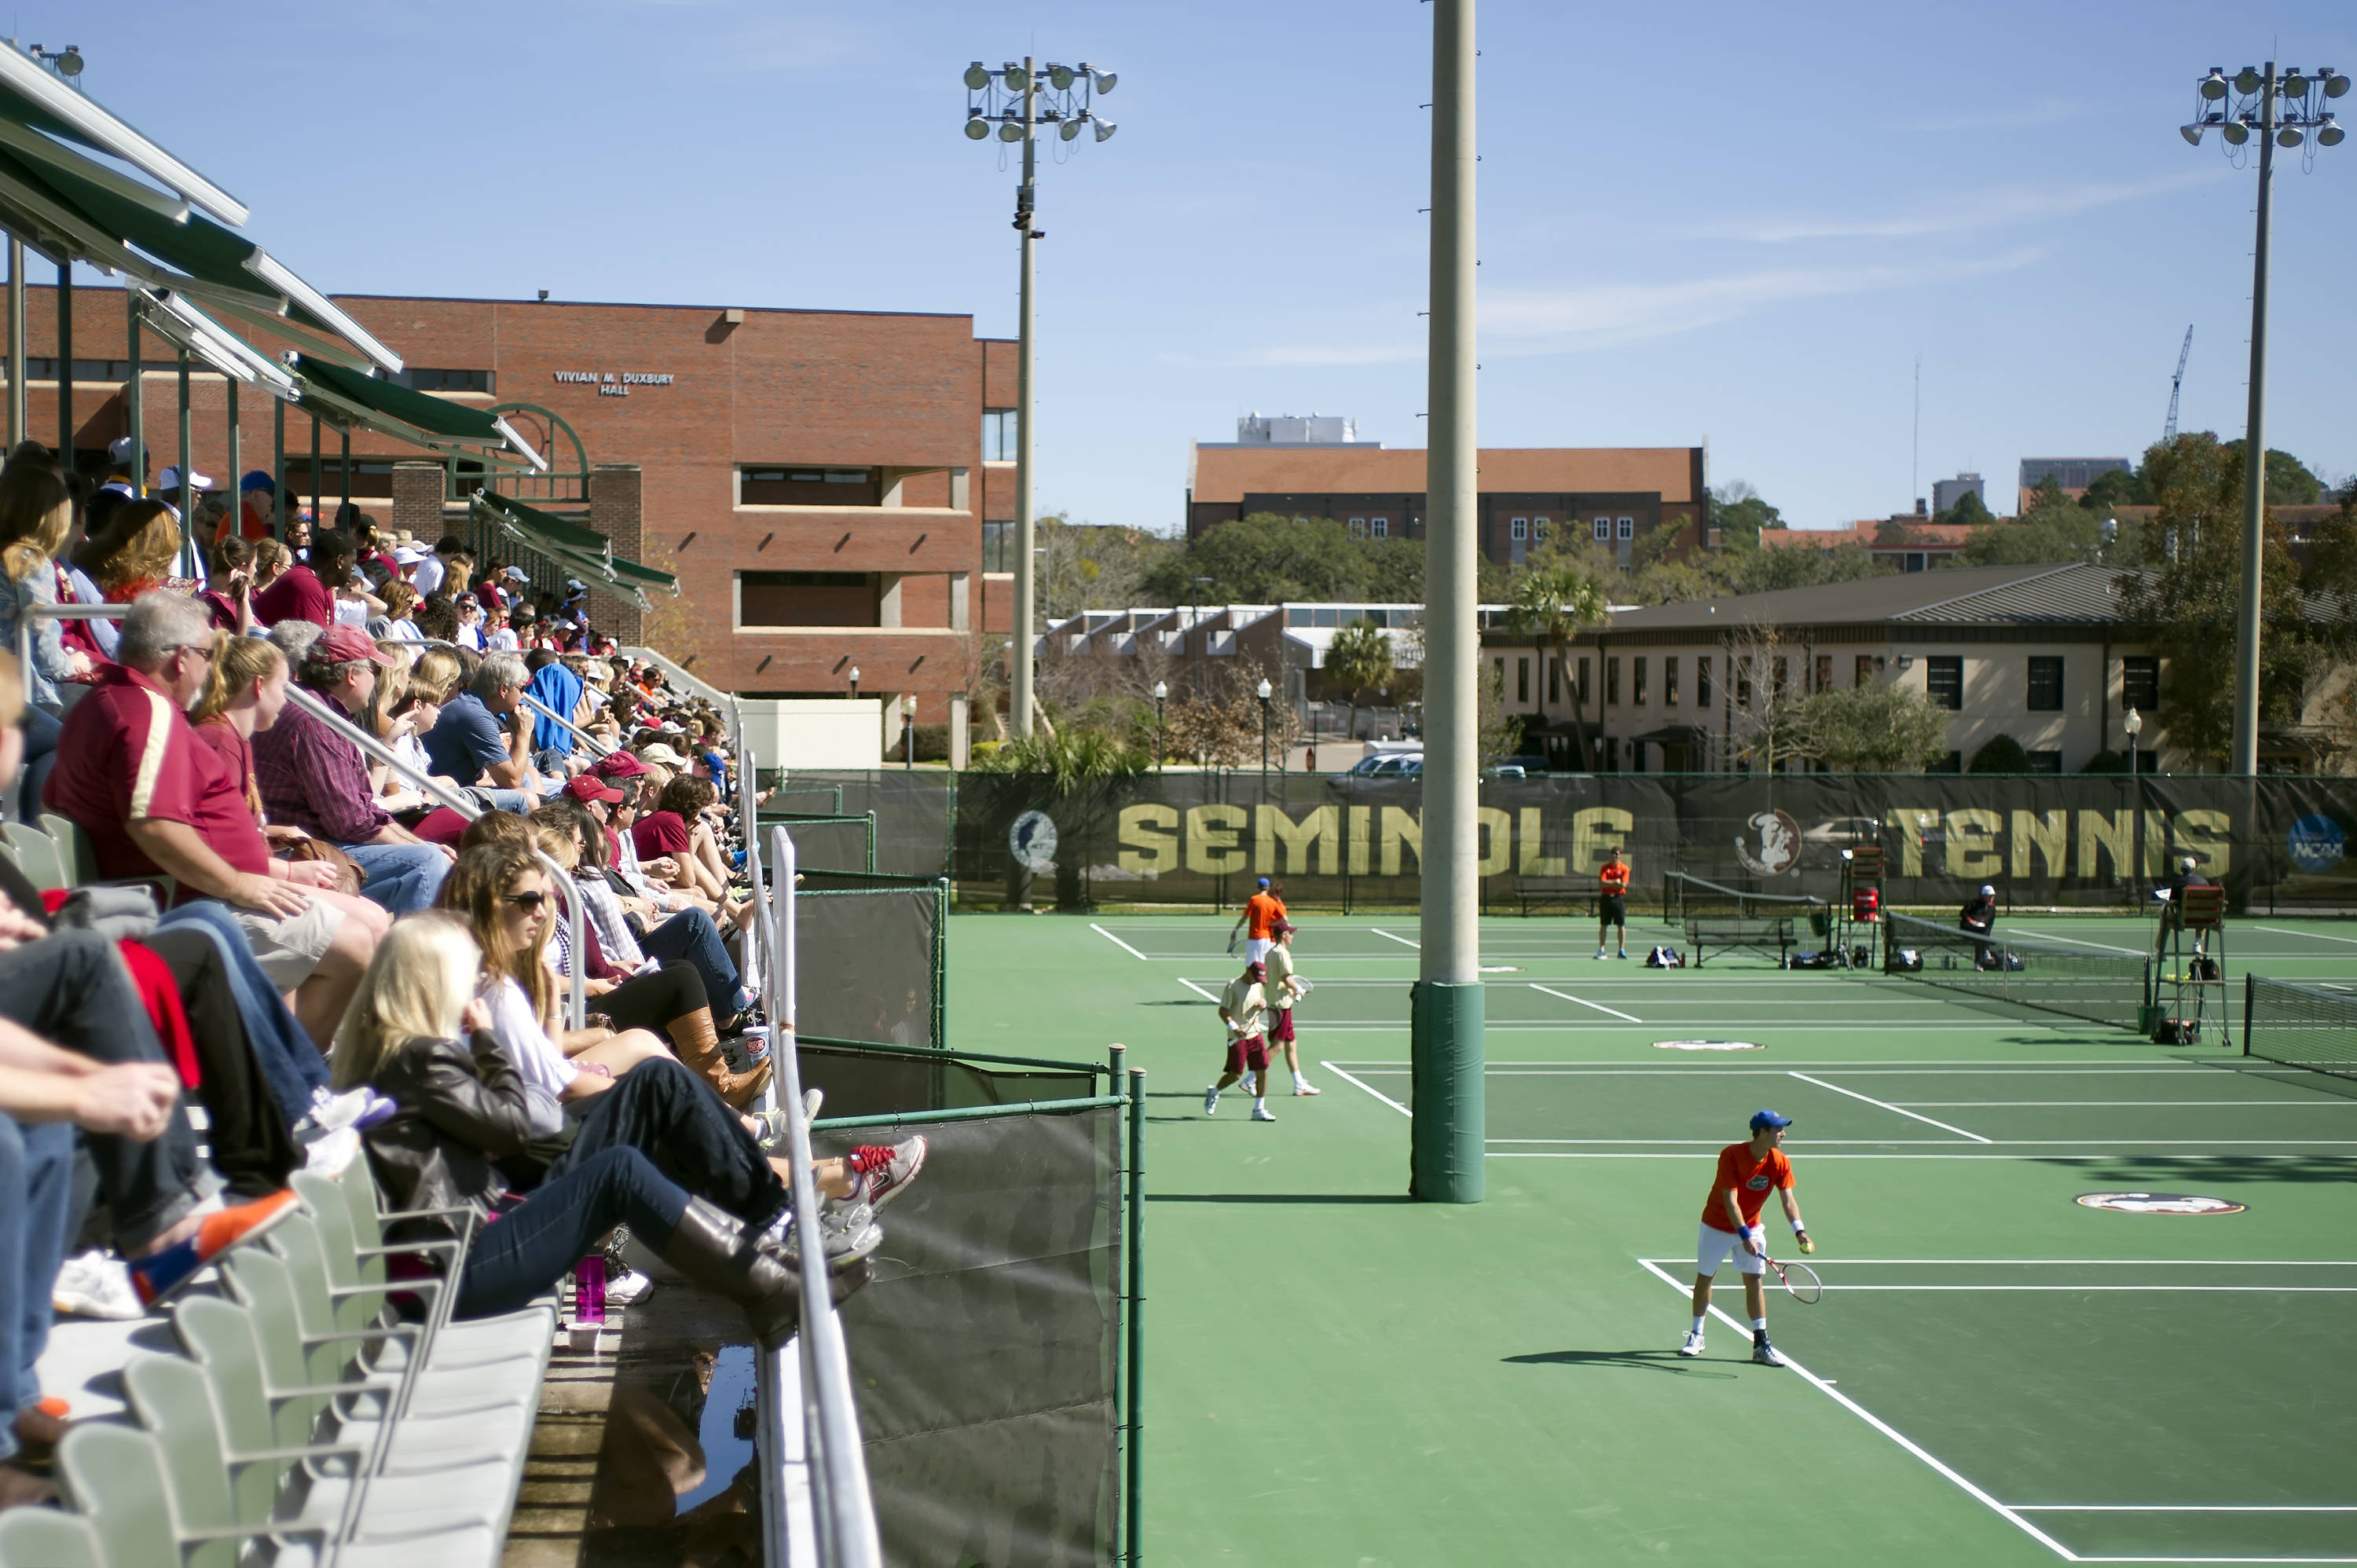 Packed house at the tennis complex